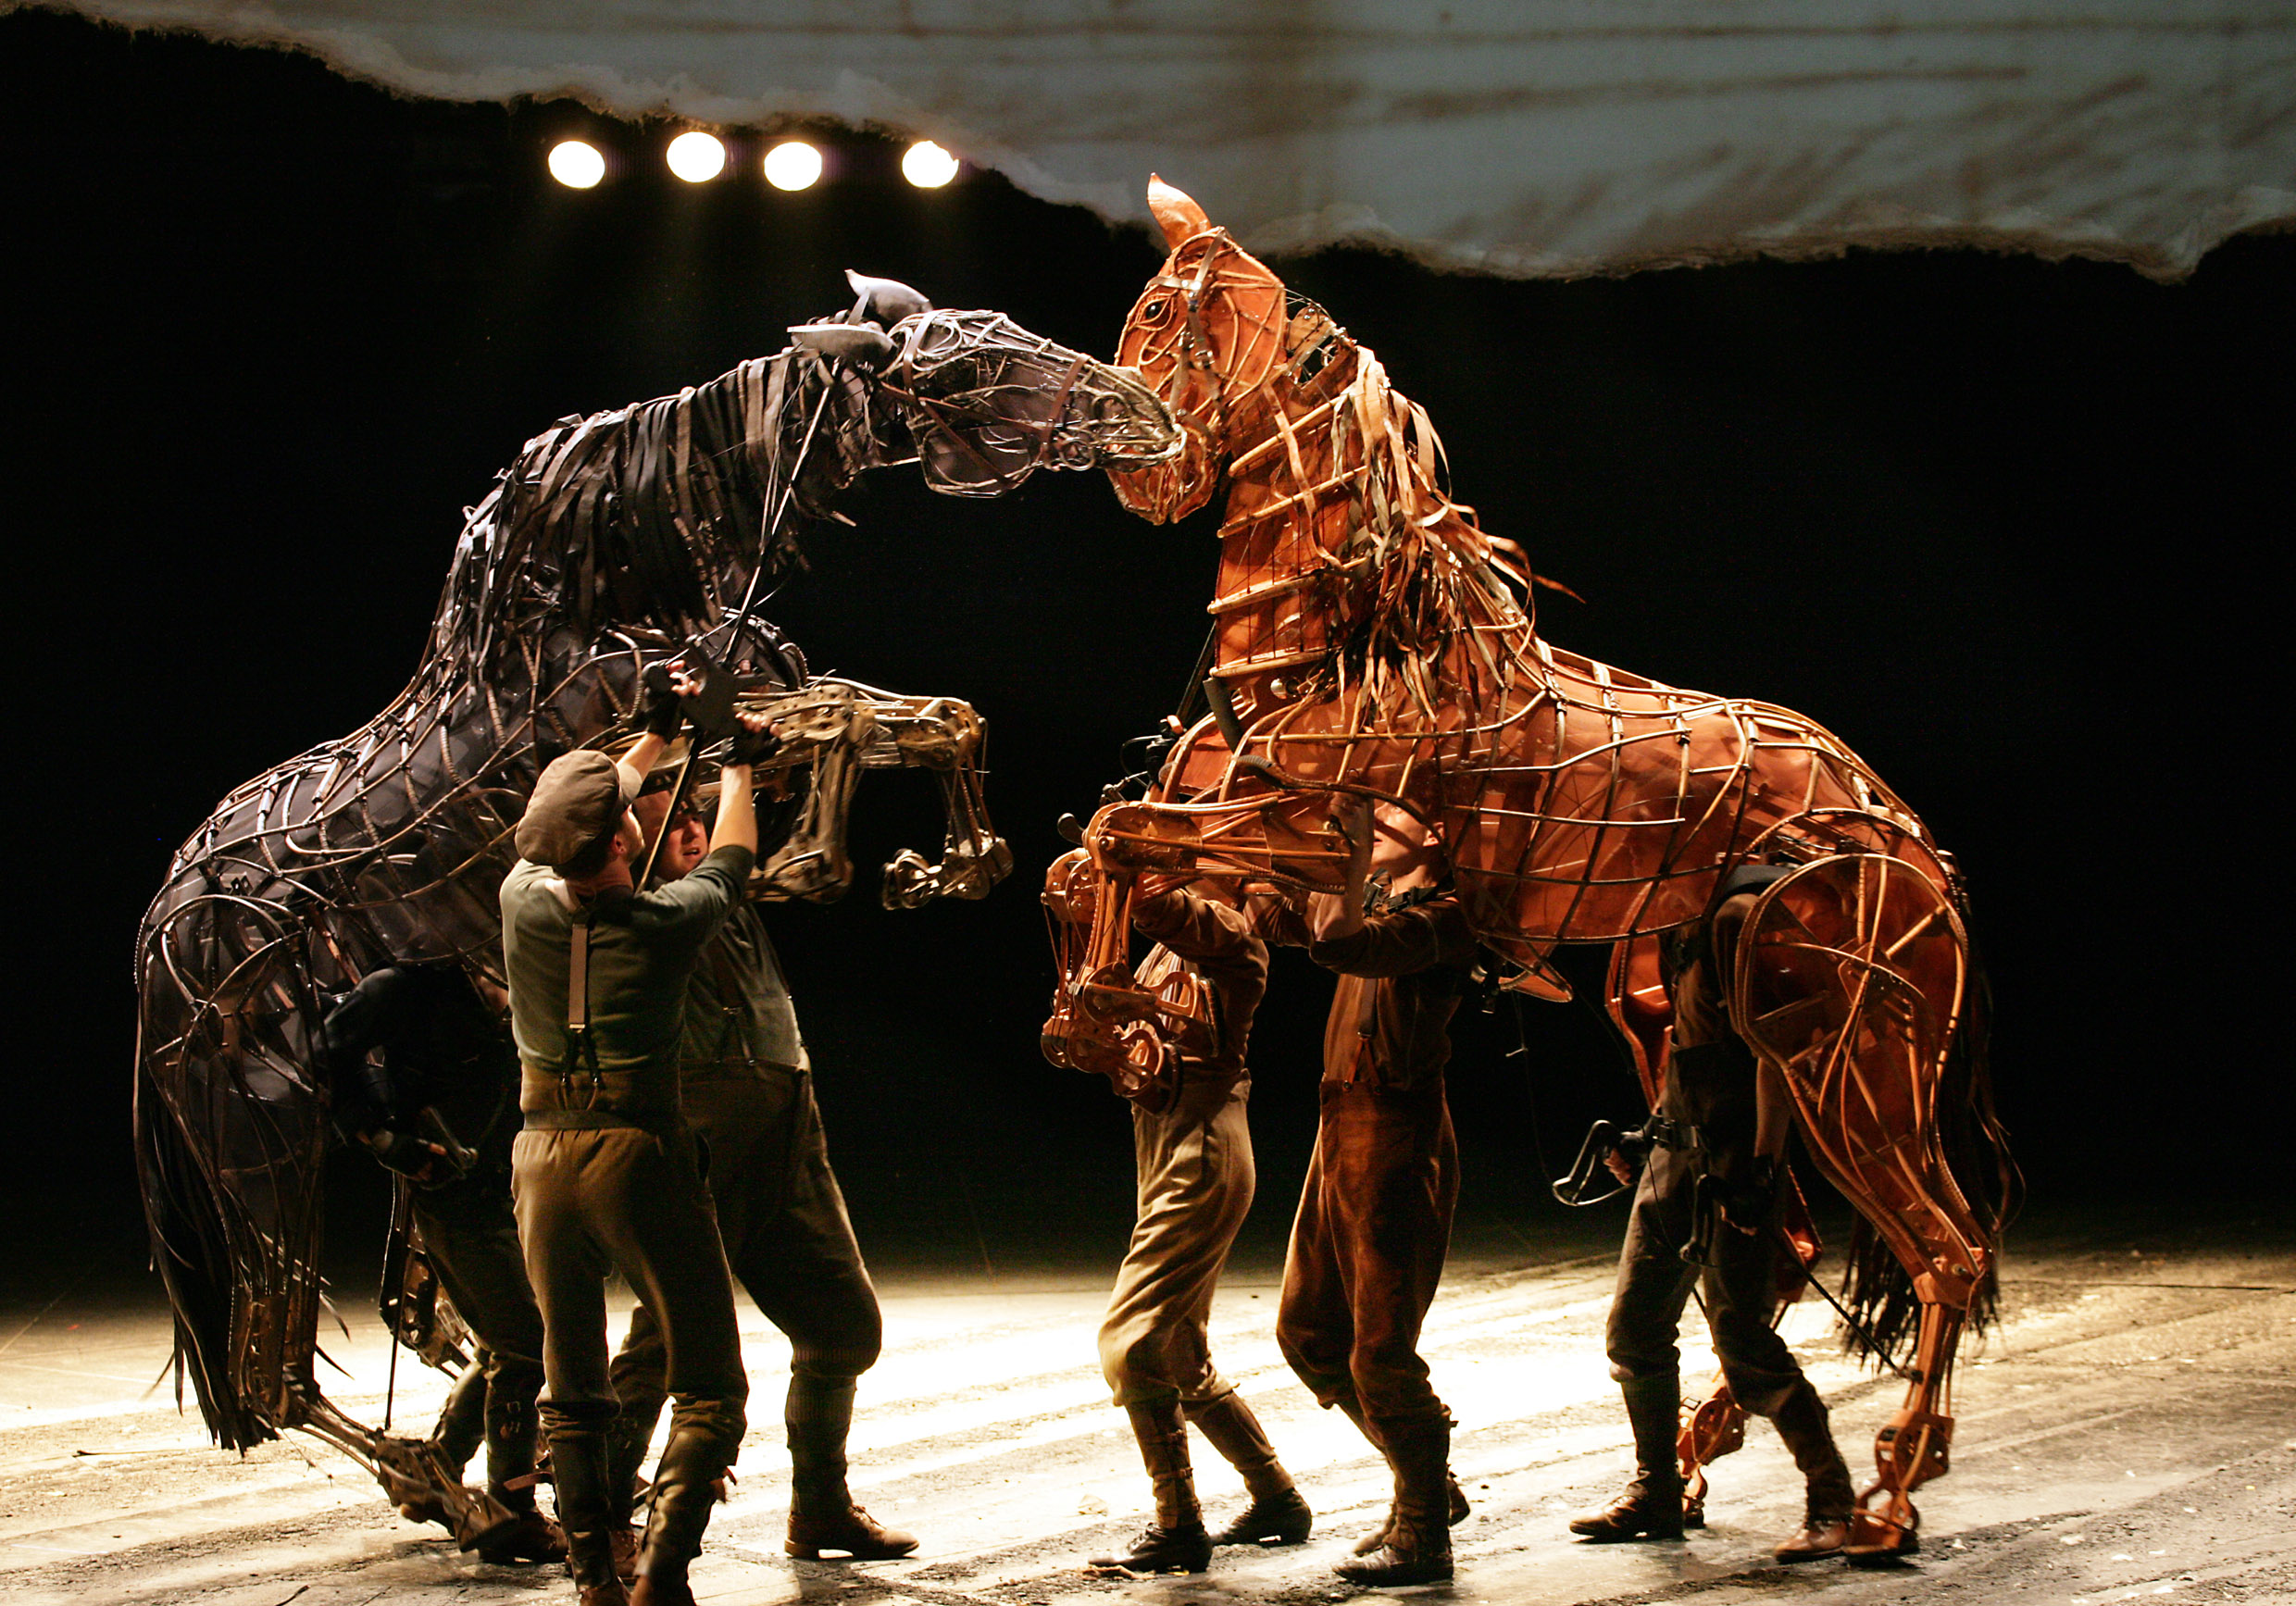 The theatrical production of War Horse will be broadcast live in 4k next Thursday.